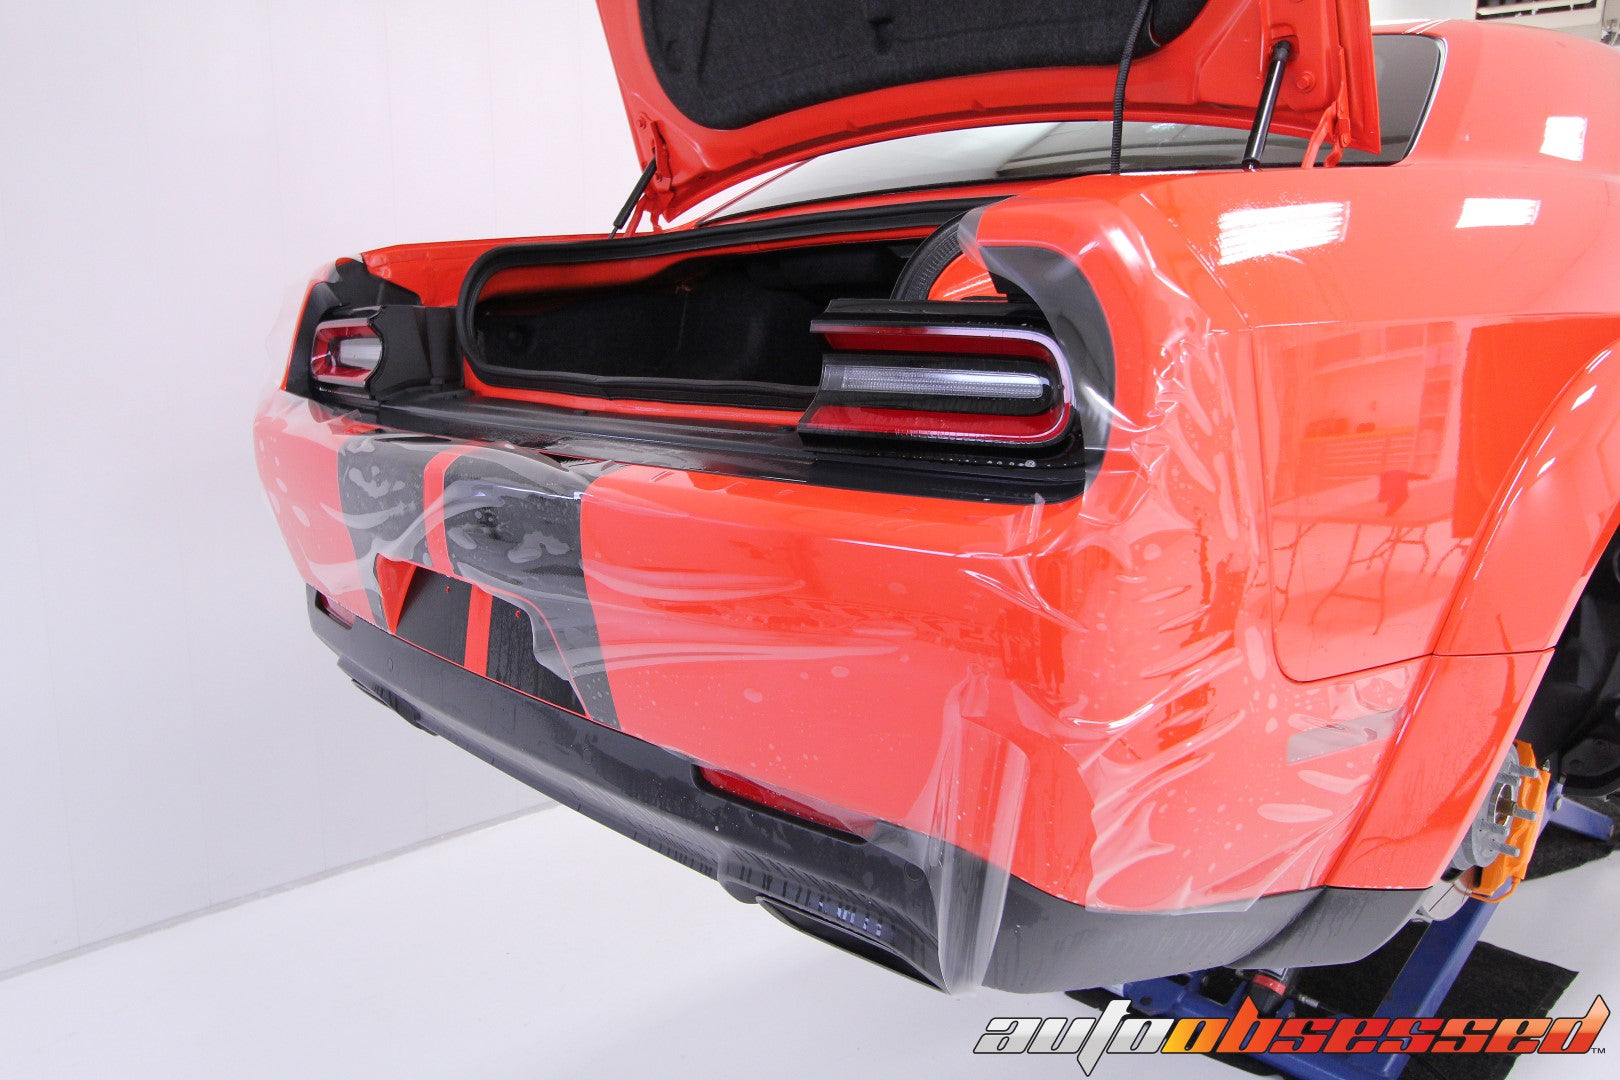 2018 Dodge Challenger Hellcat Paint Protection Film PPF Installation - Auto Obsessed